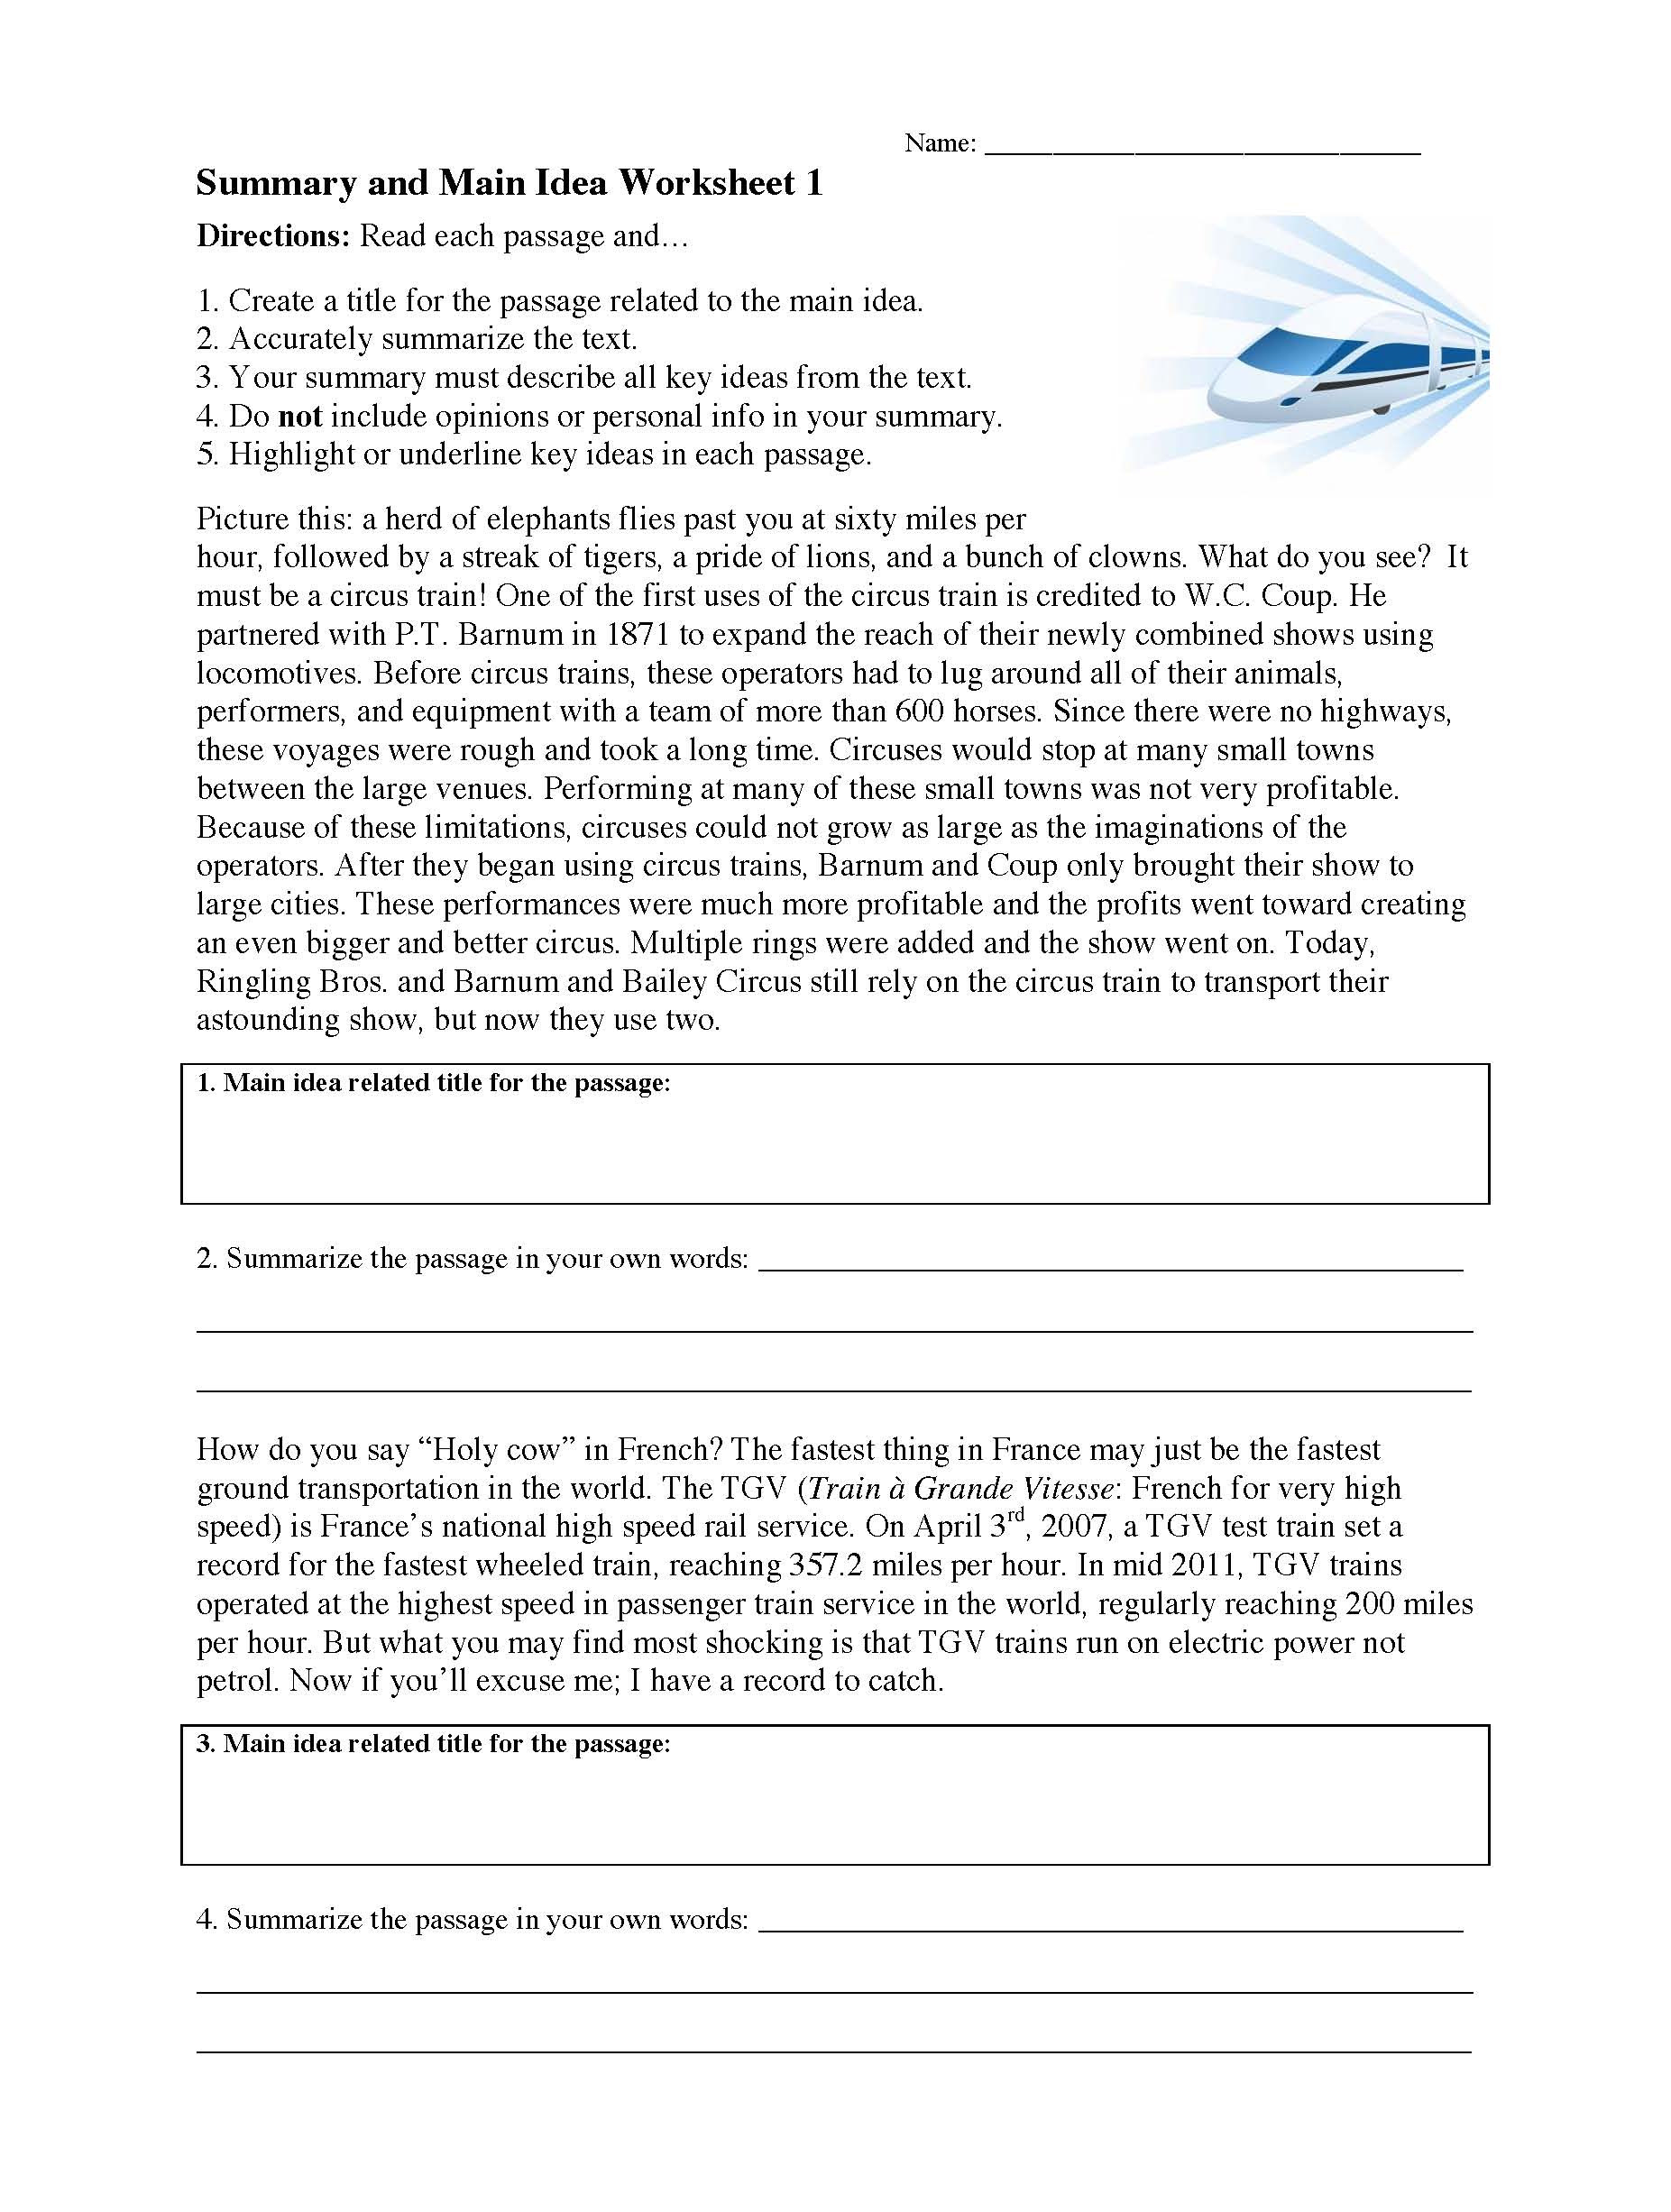 Summary And Main Idea Worksheet 1  Preview